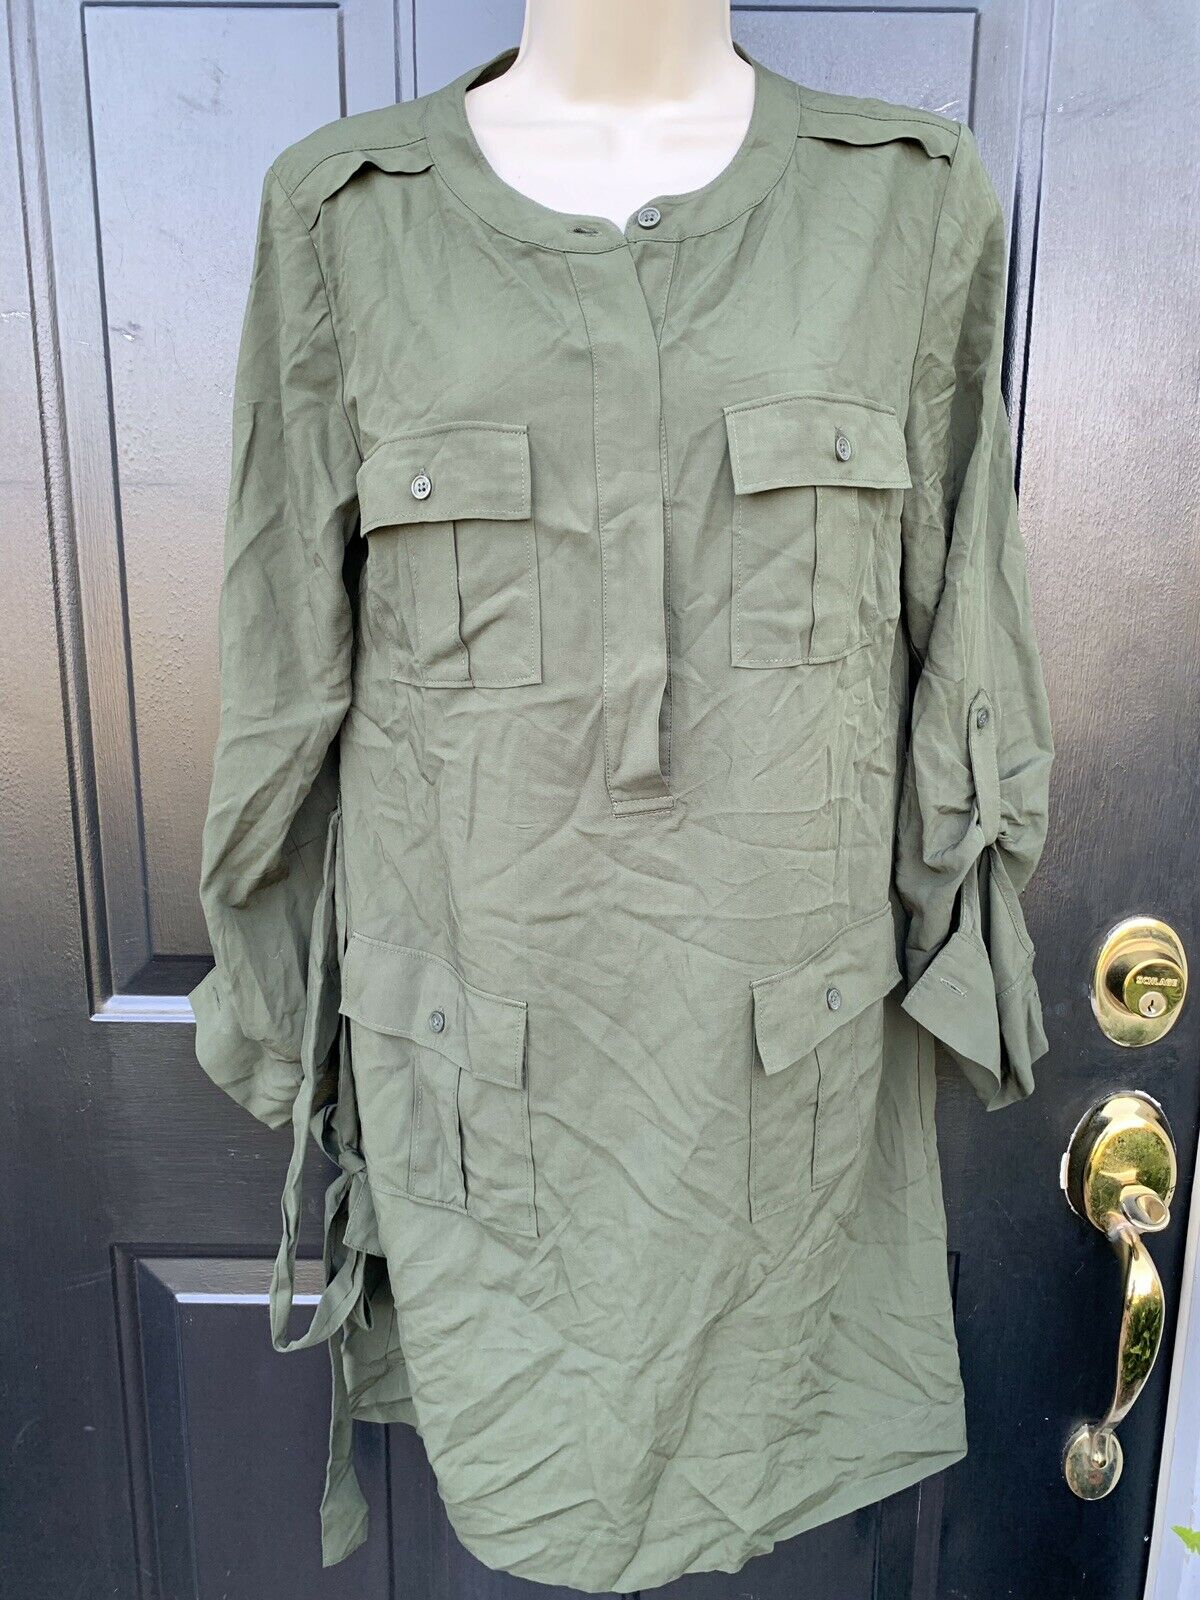 NWT Banana Republic  Dress Size 4 Green New@79